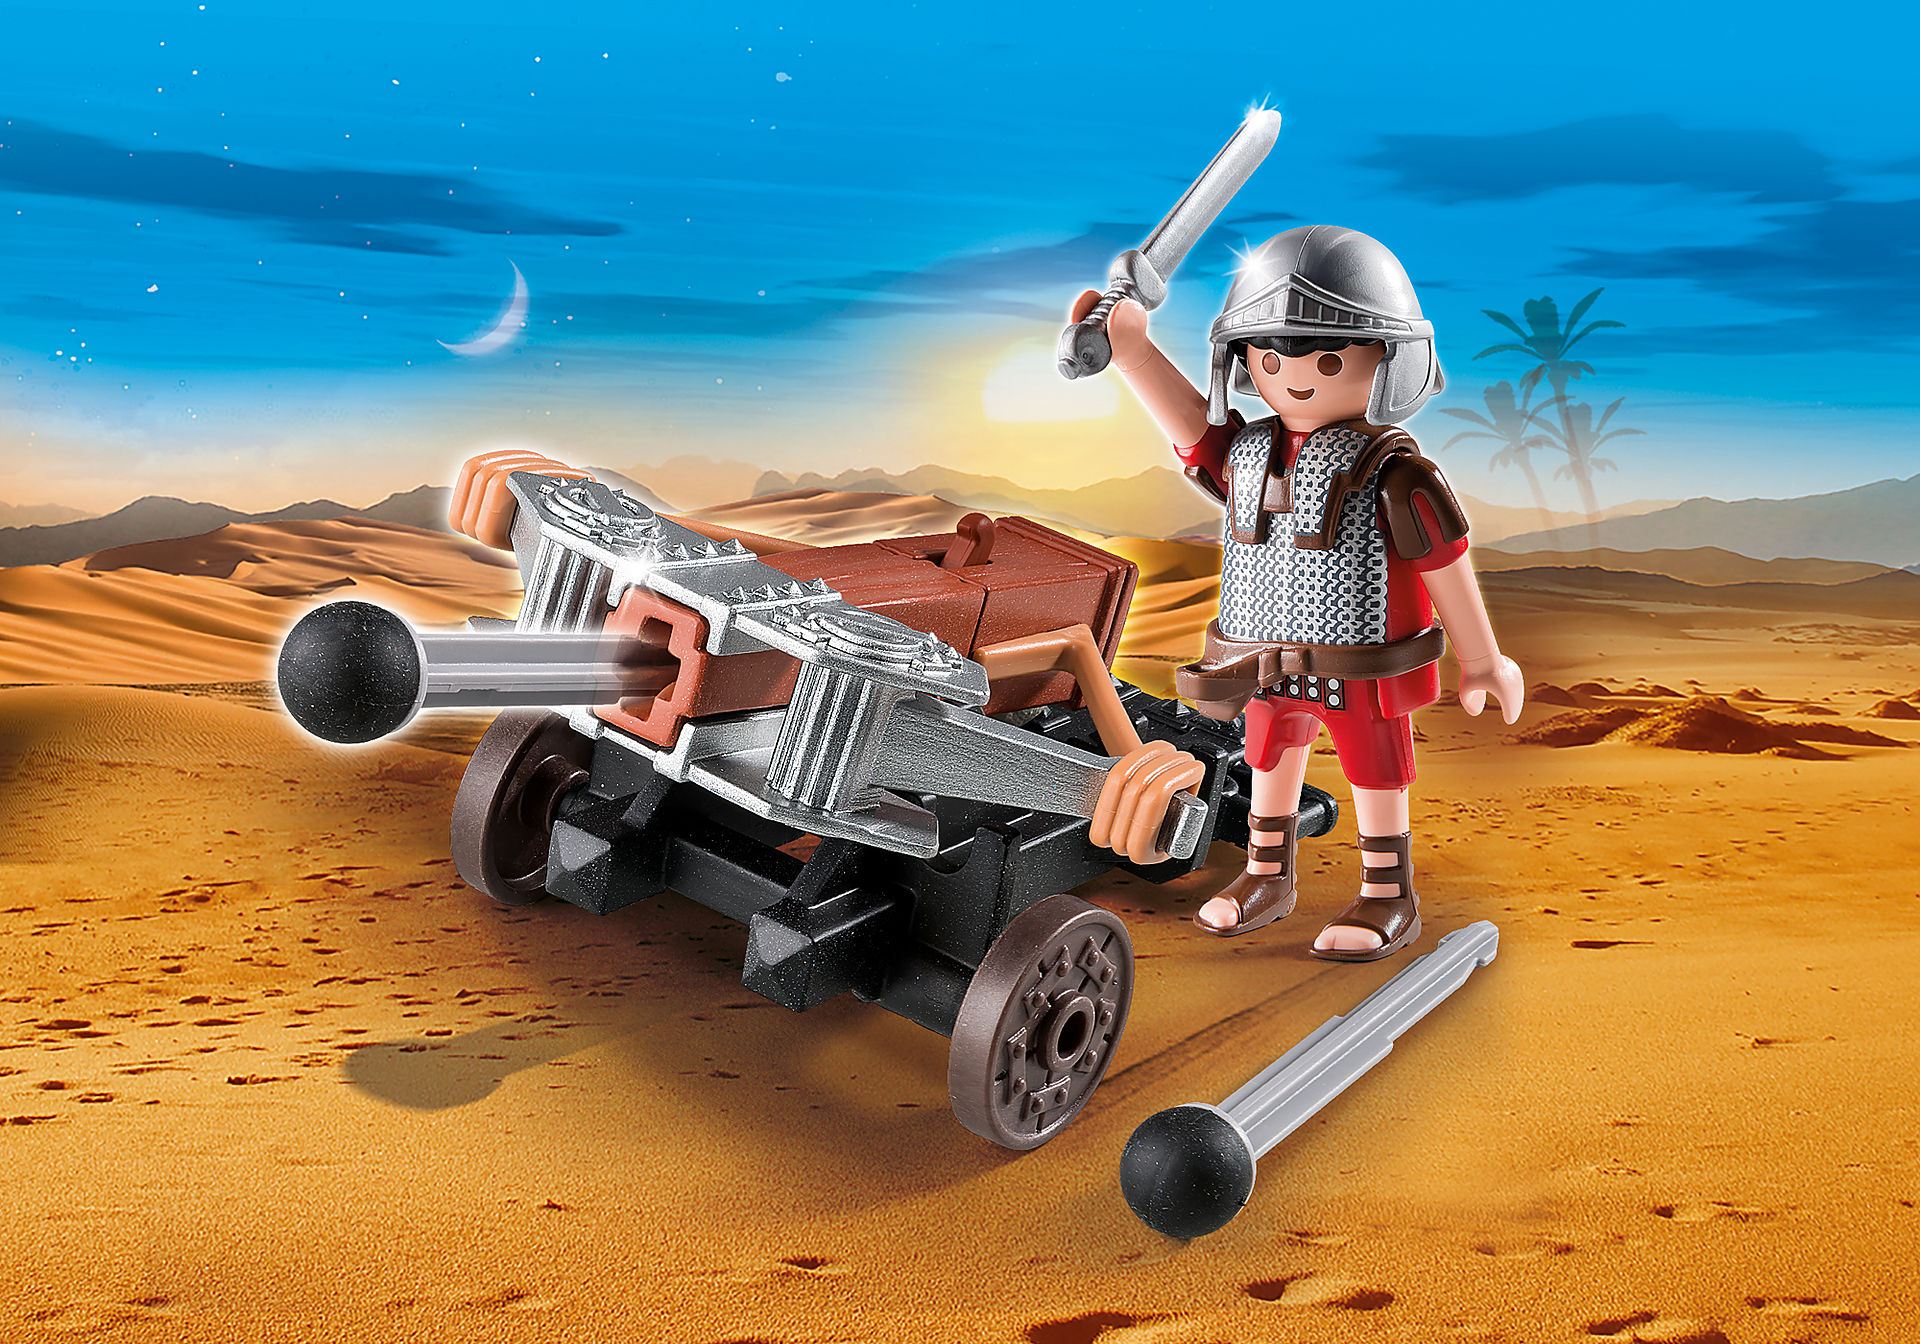 http://media.playmobil.com/i/playmobil/5392_product_detail/Римляне и Египтяне: Легионер с Баллистой